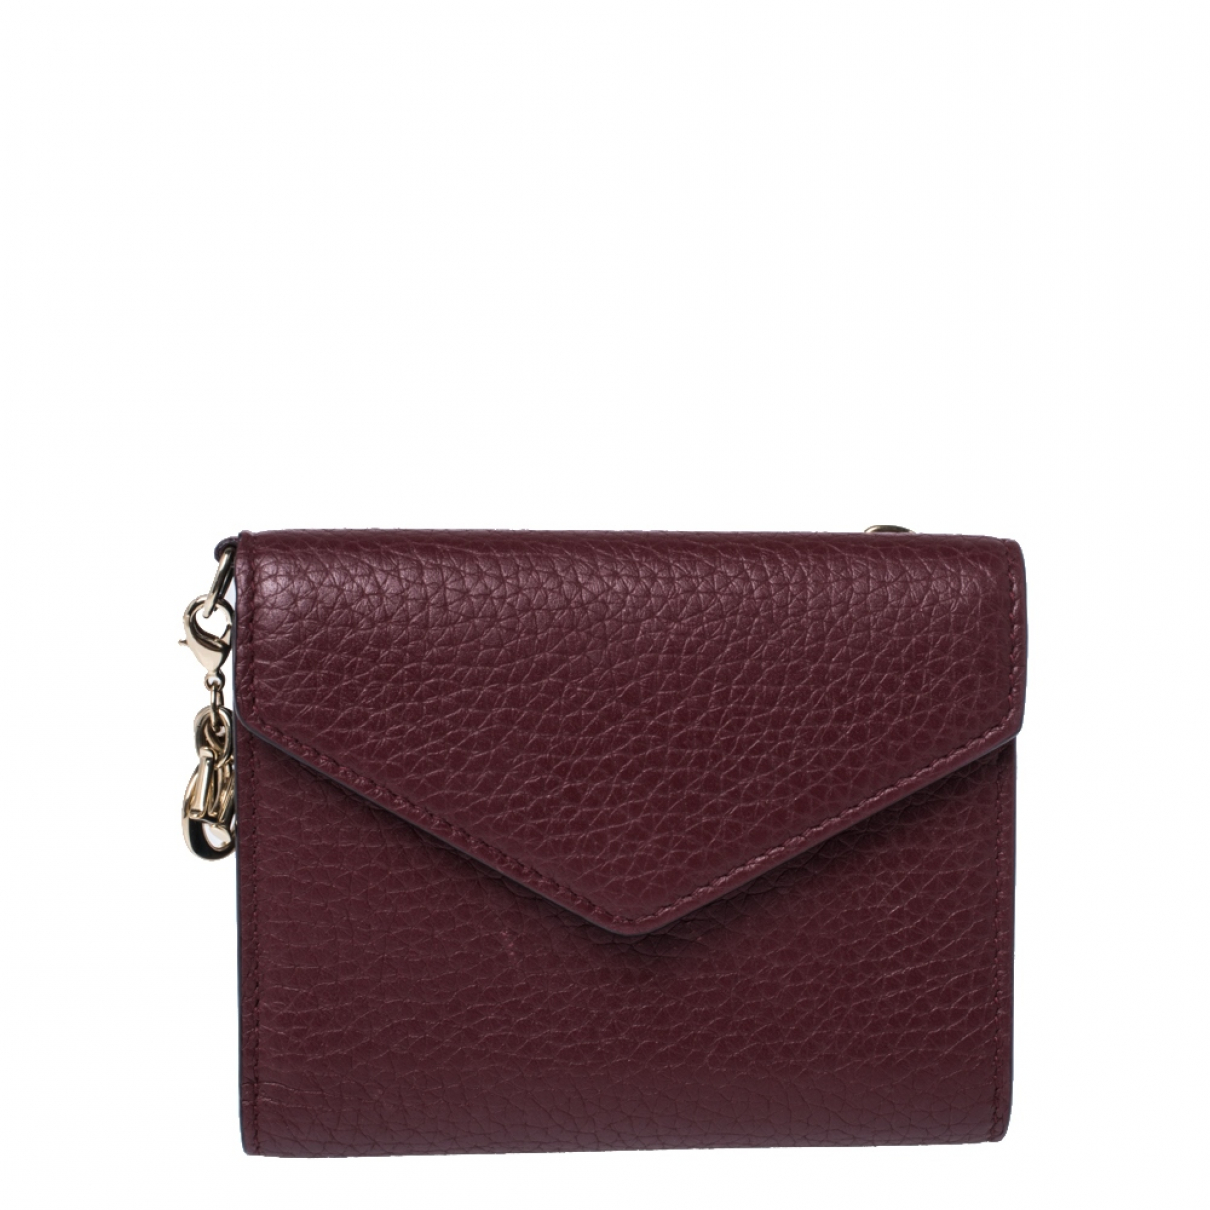 Dior Diorissimo Burgundy Leather wallet for Women N